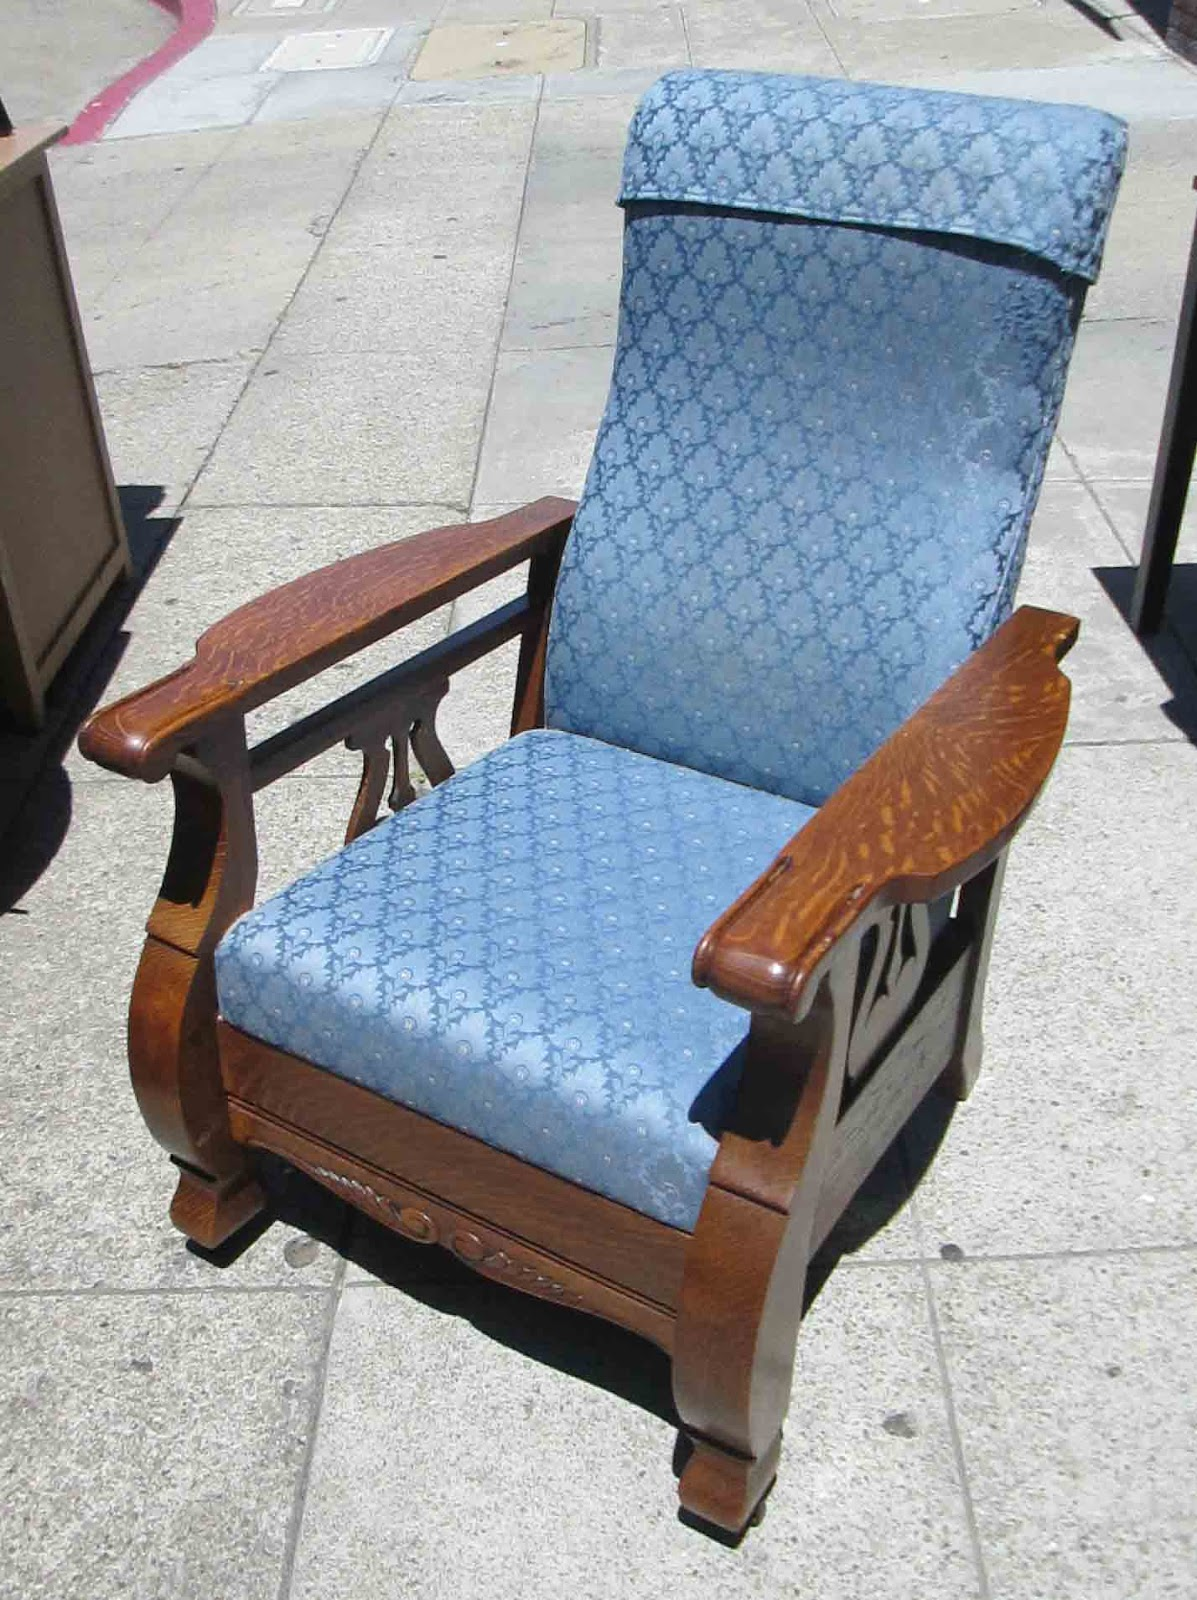 morris chairs for sale wood chair accessories uhuru furniture and collectibles sold antique